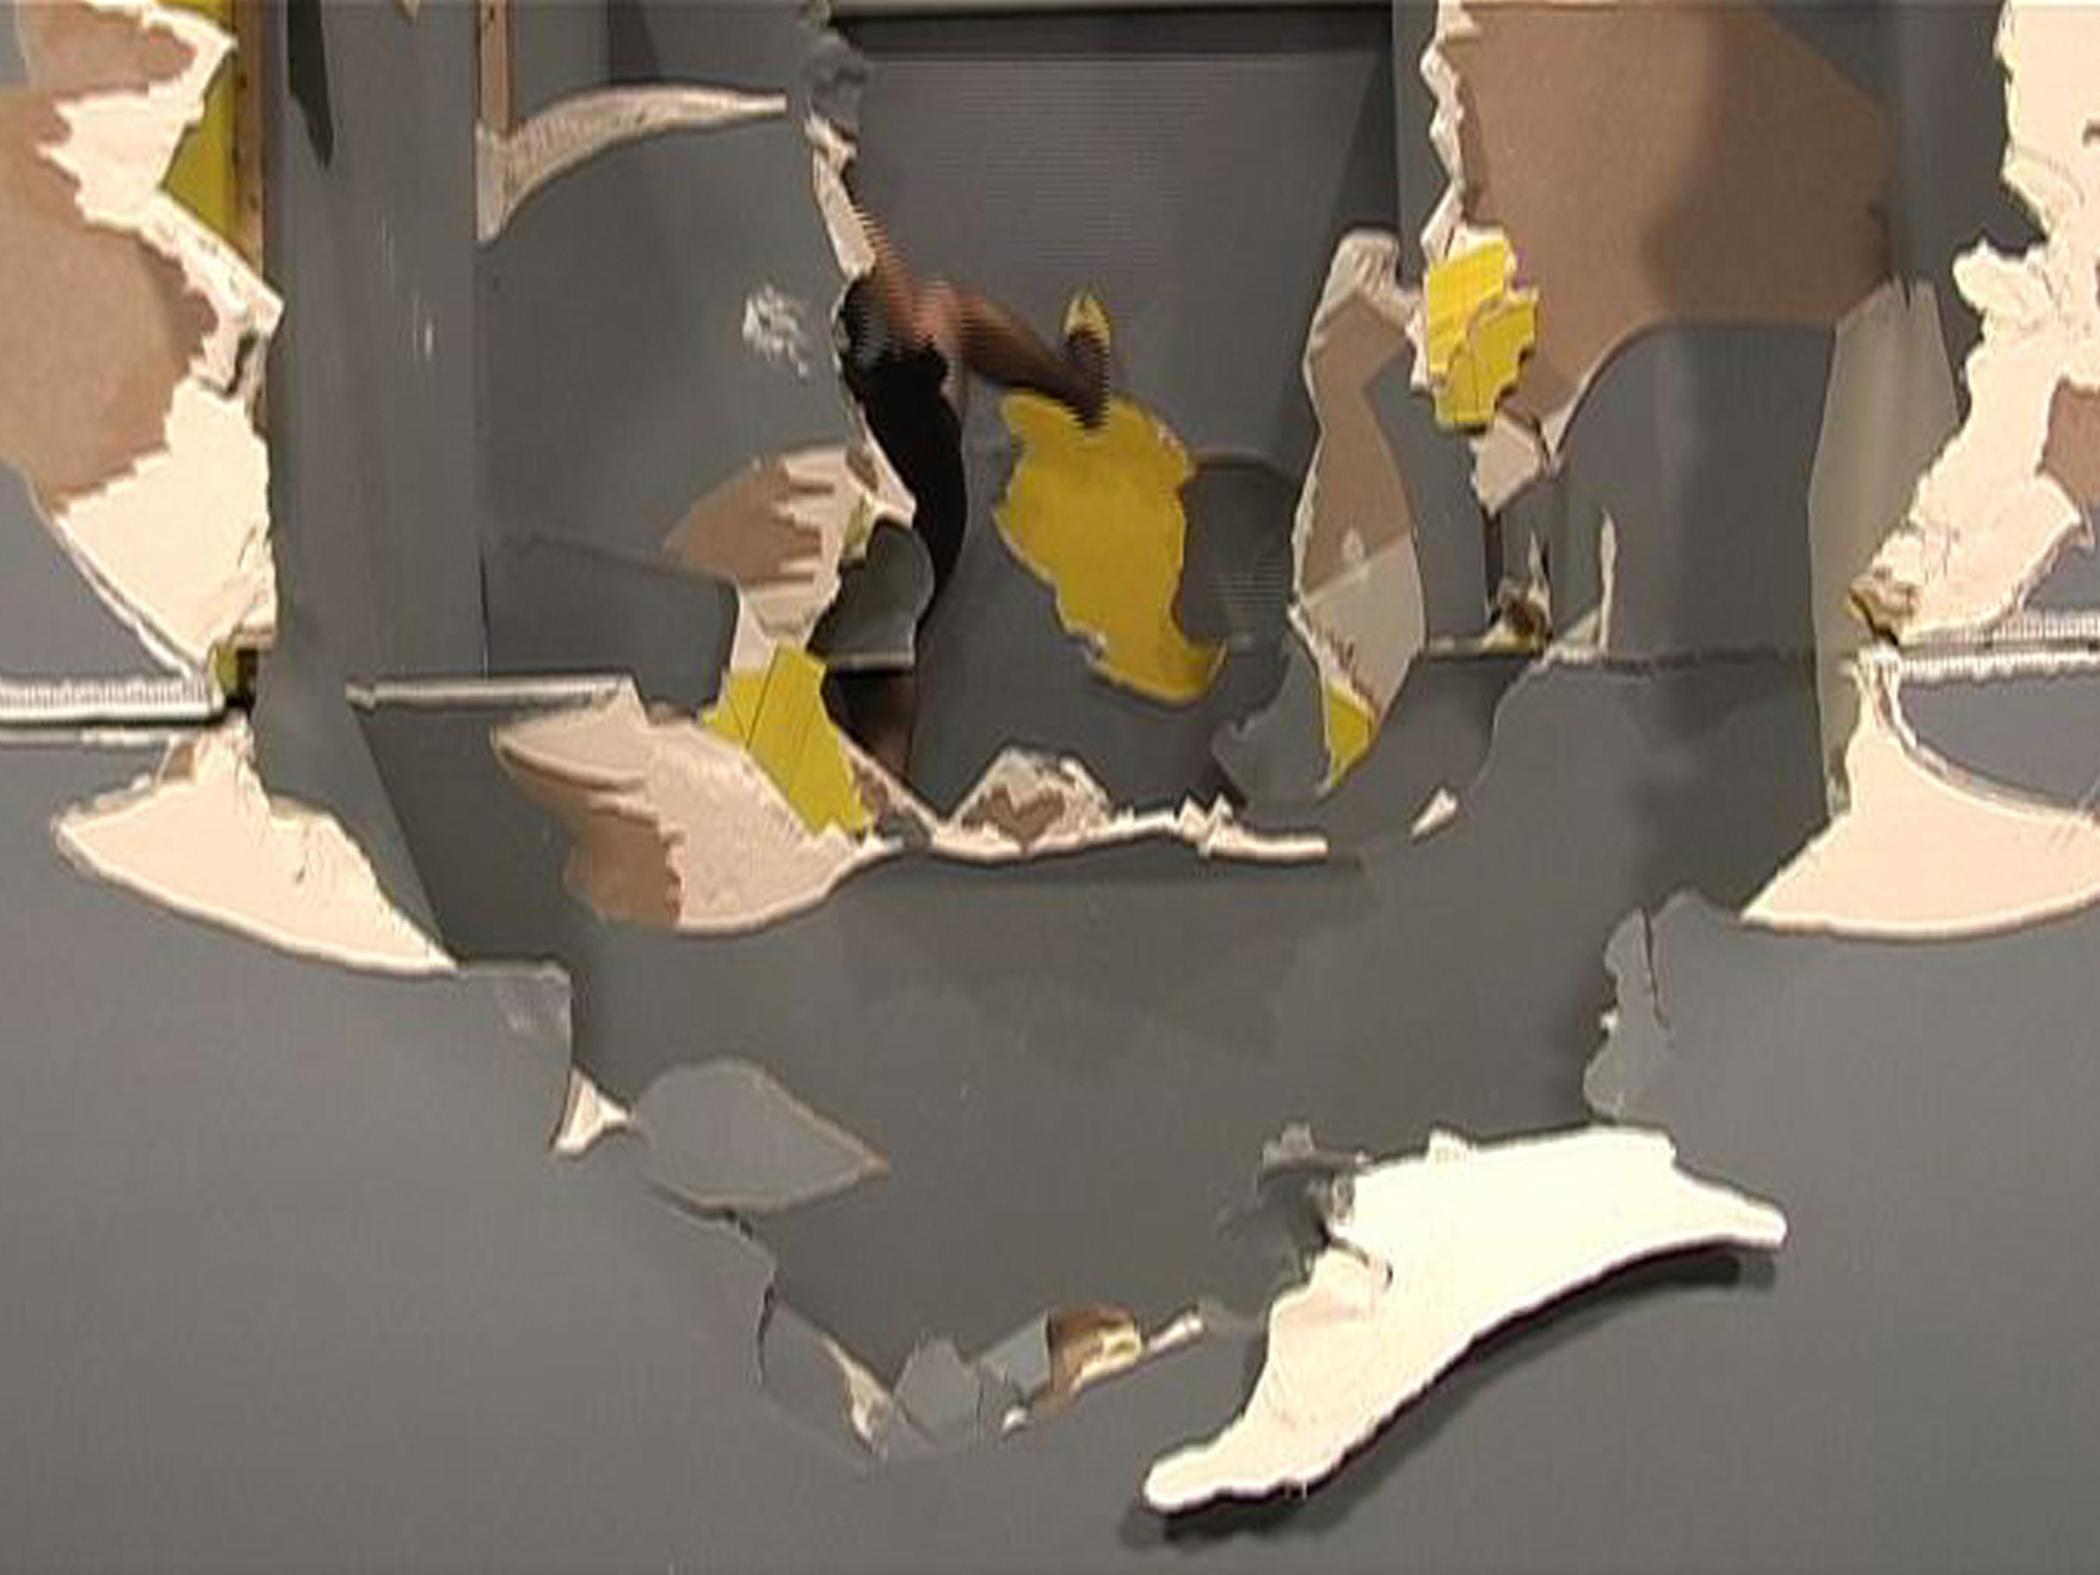 Layered gray walls are seen head on, receding into the middle distance. Each wall has a rough hole through it, forming a tunnel through which successive walls are visible. The broken edges of each hole are cream, brown, and mustard. At the end of the tunnel, a person's blurry leg wearing a yellow shoe kicks upward.